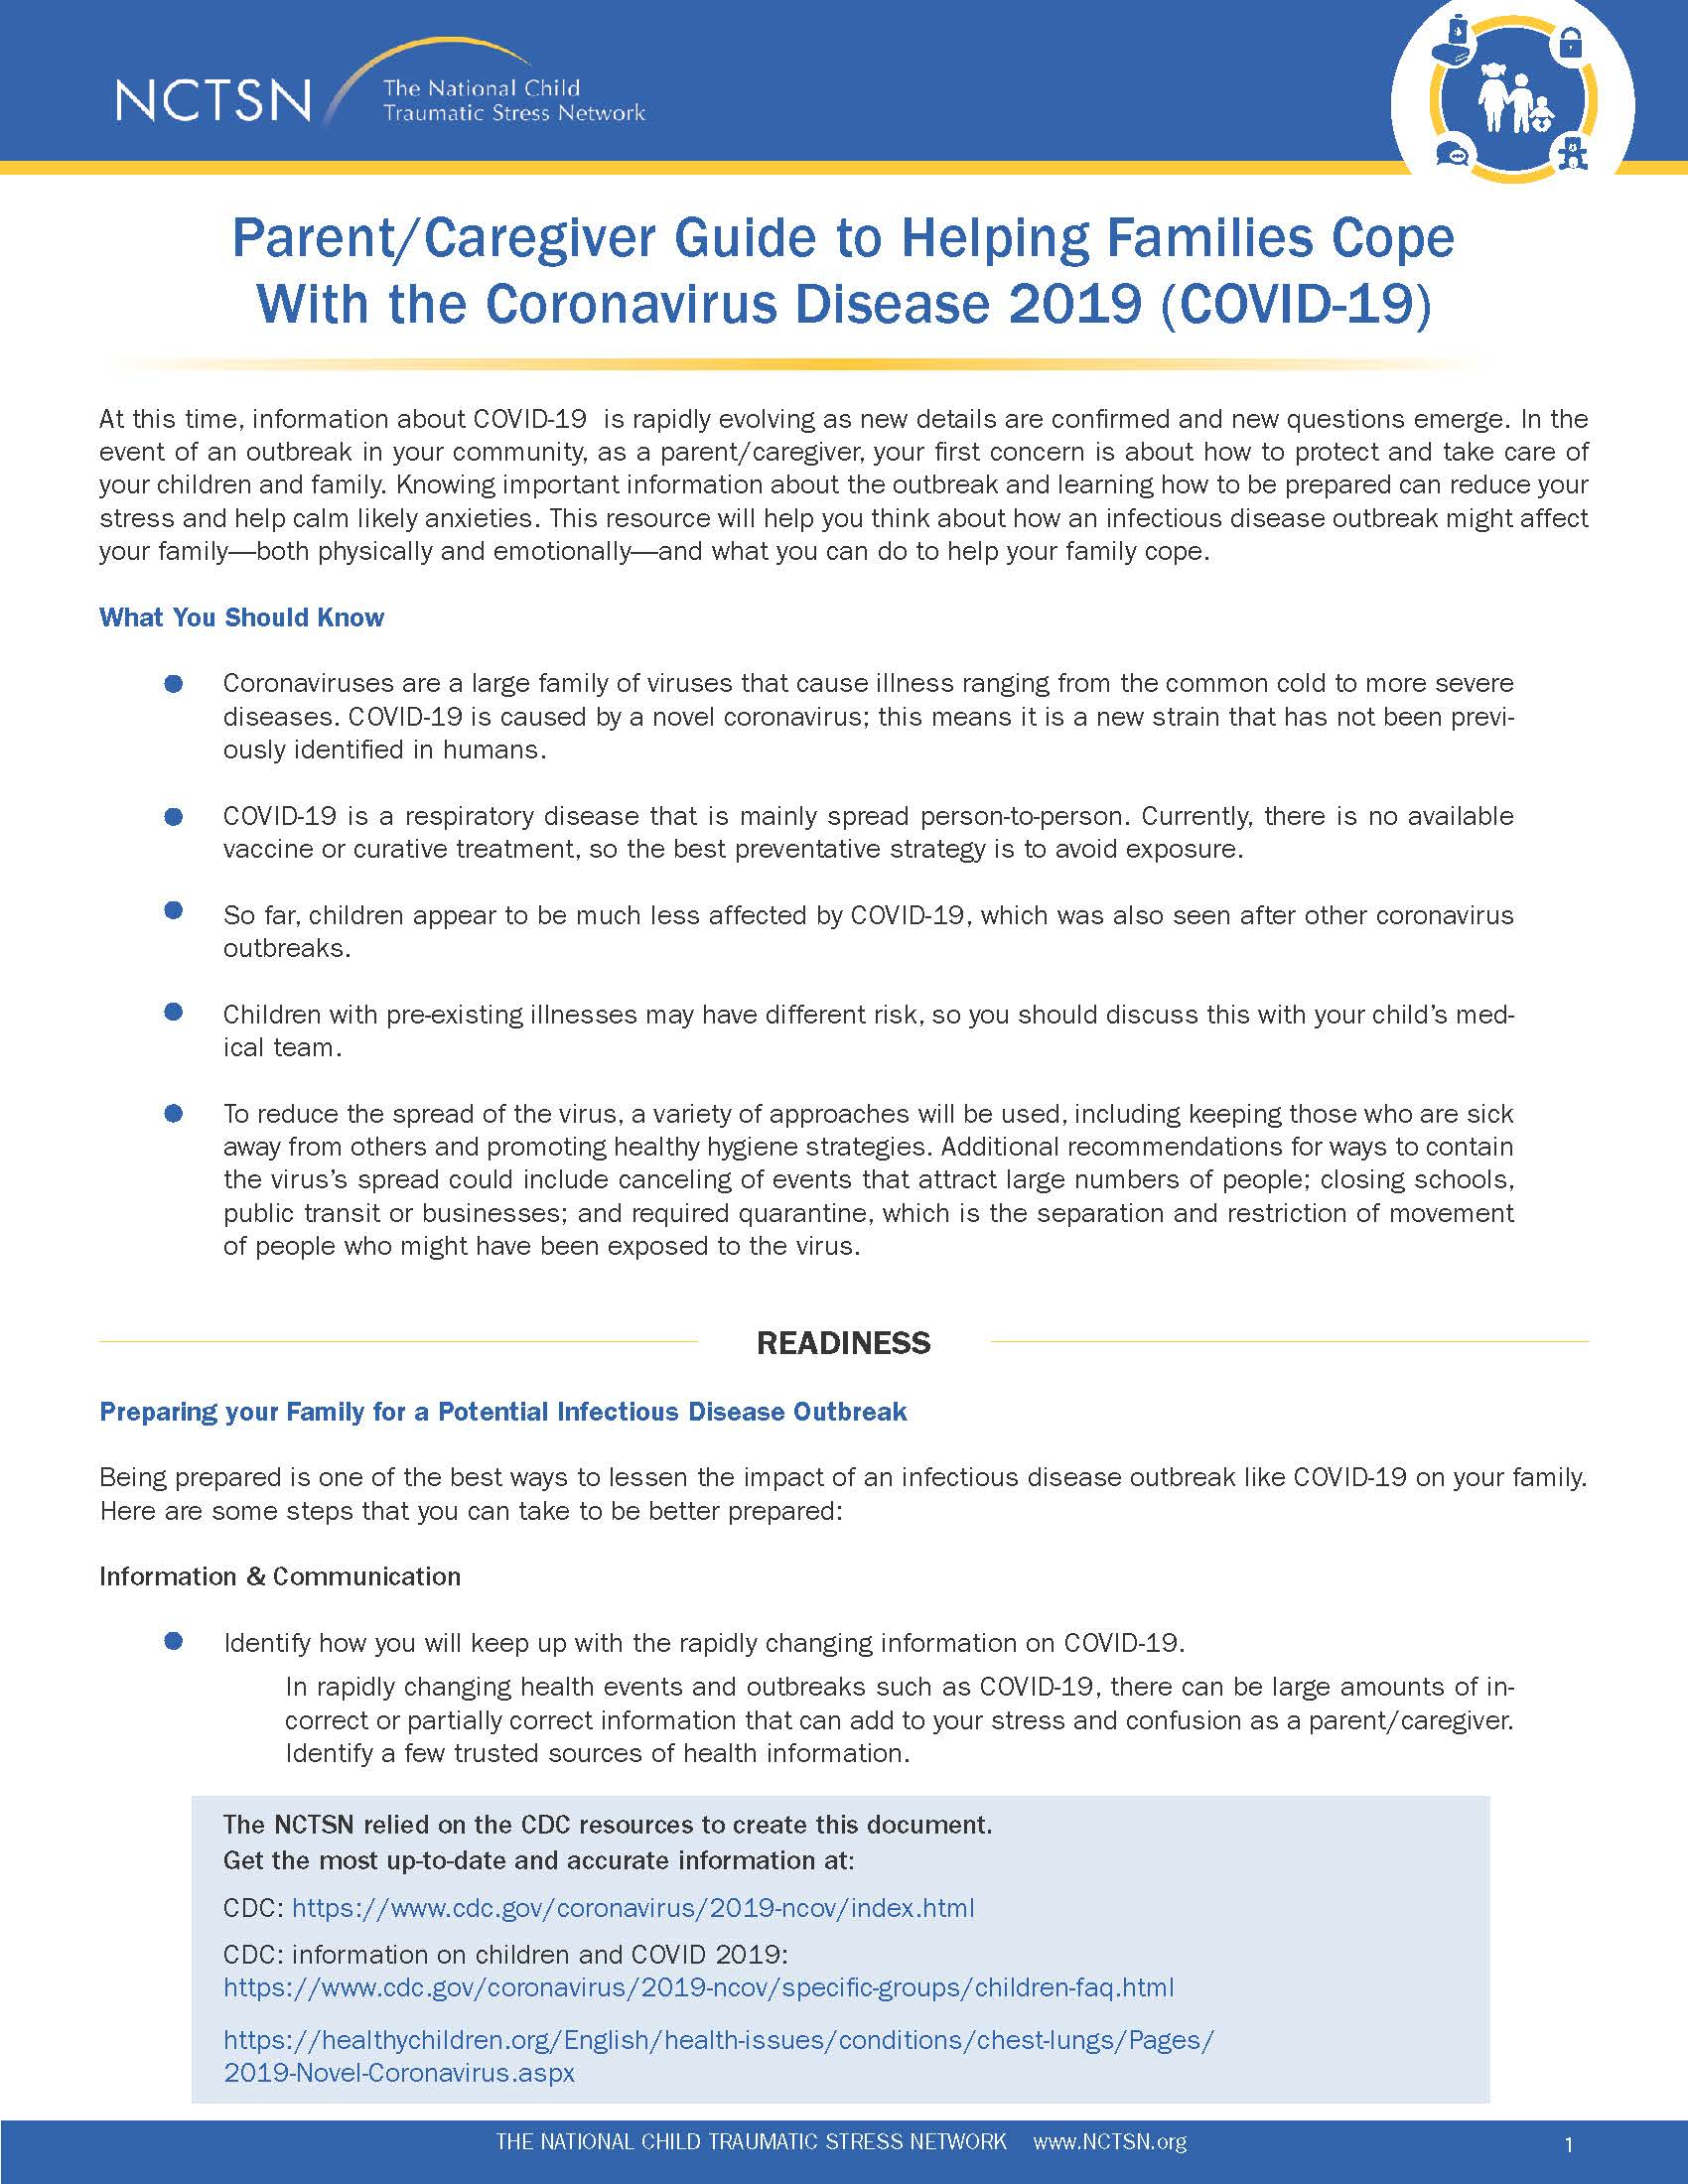 Caregiver Guide to Helping Families Cope with the Coronavirus Image